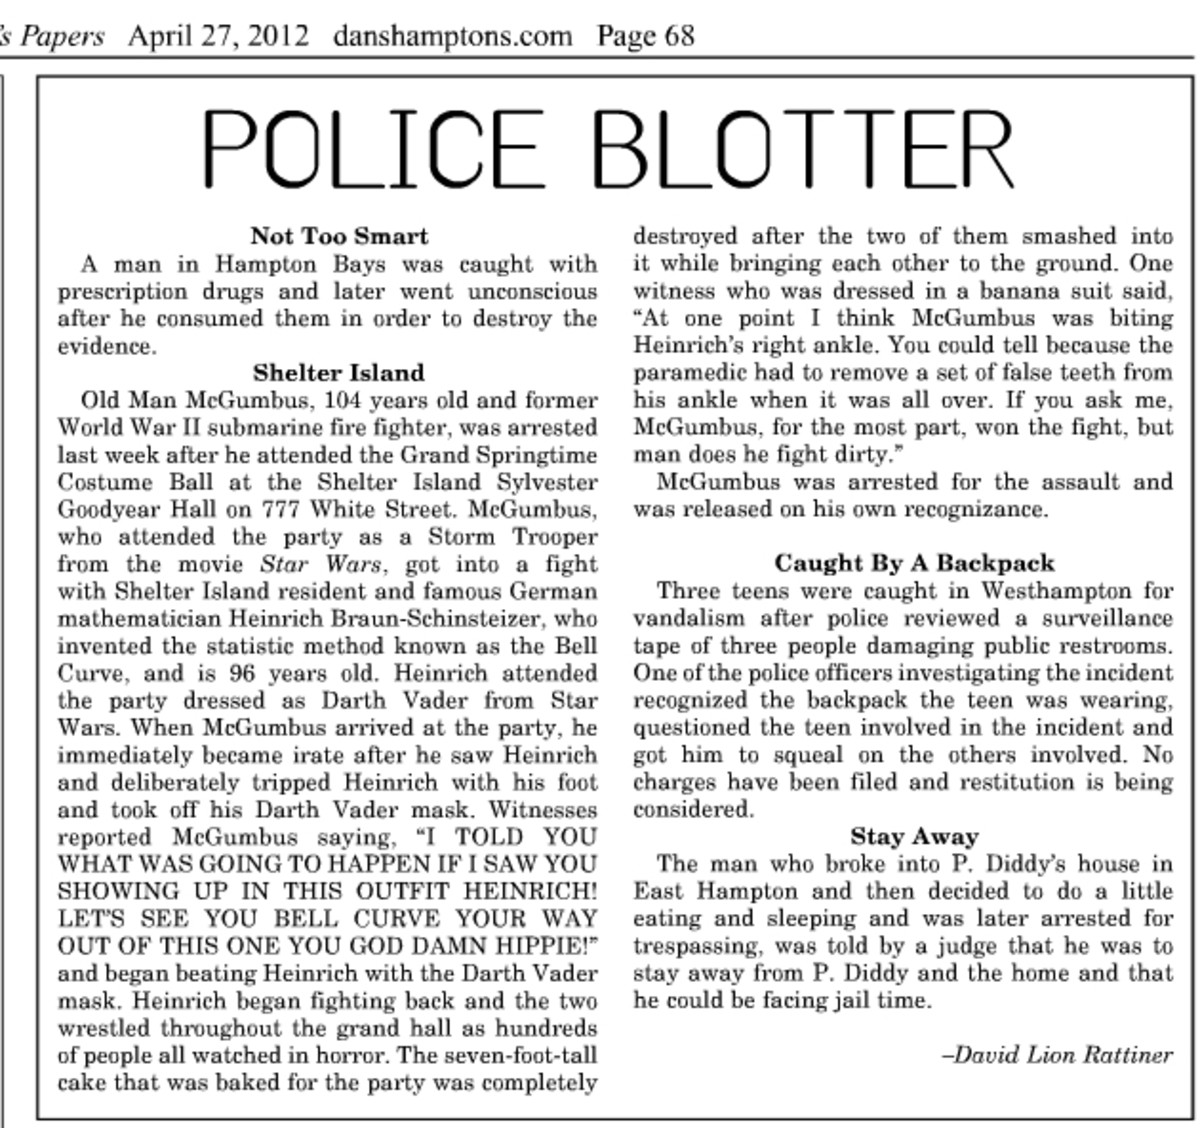 A typical police blotter from Dan's Papers. (Courtesy: Dan's Papers)